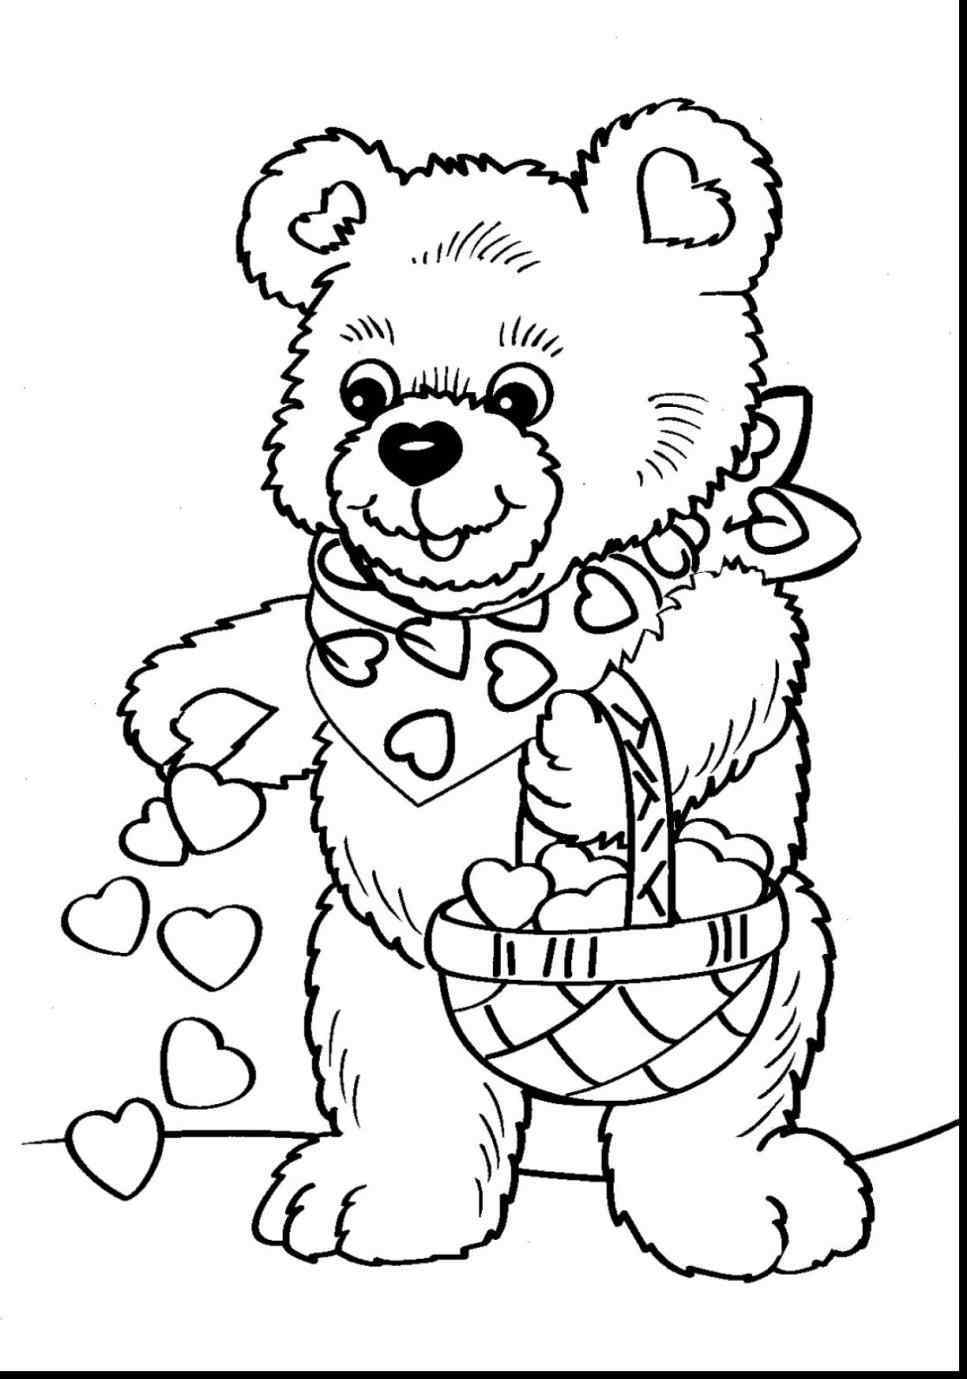 967x1379 Fein Dad Coloring Pages Ideen